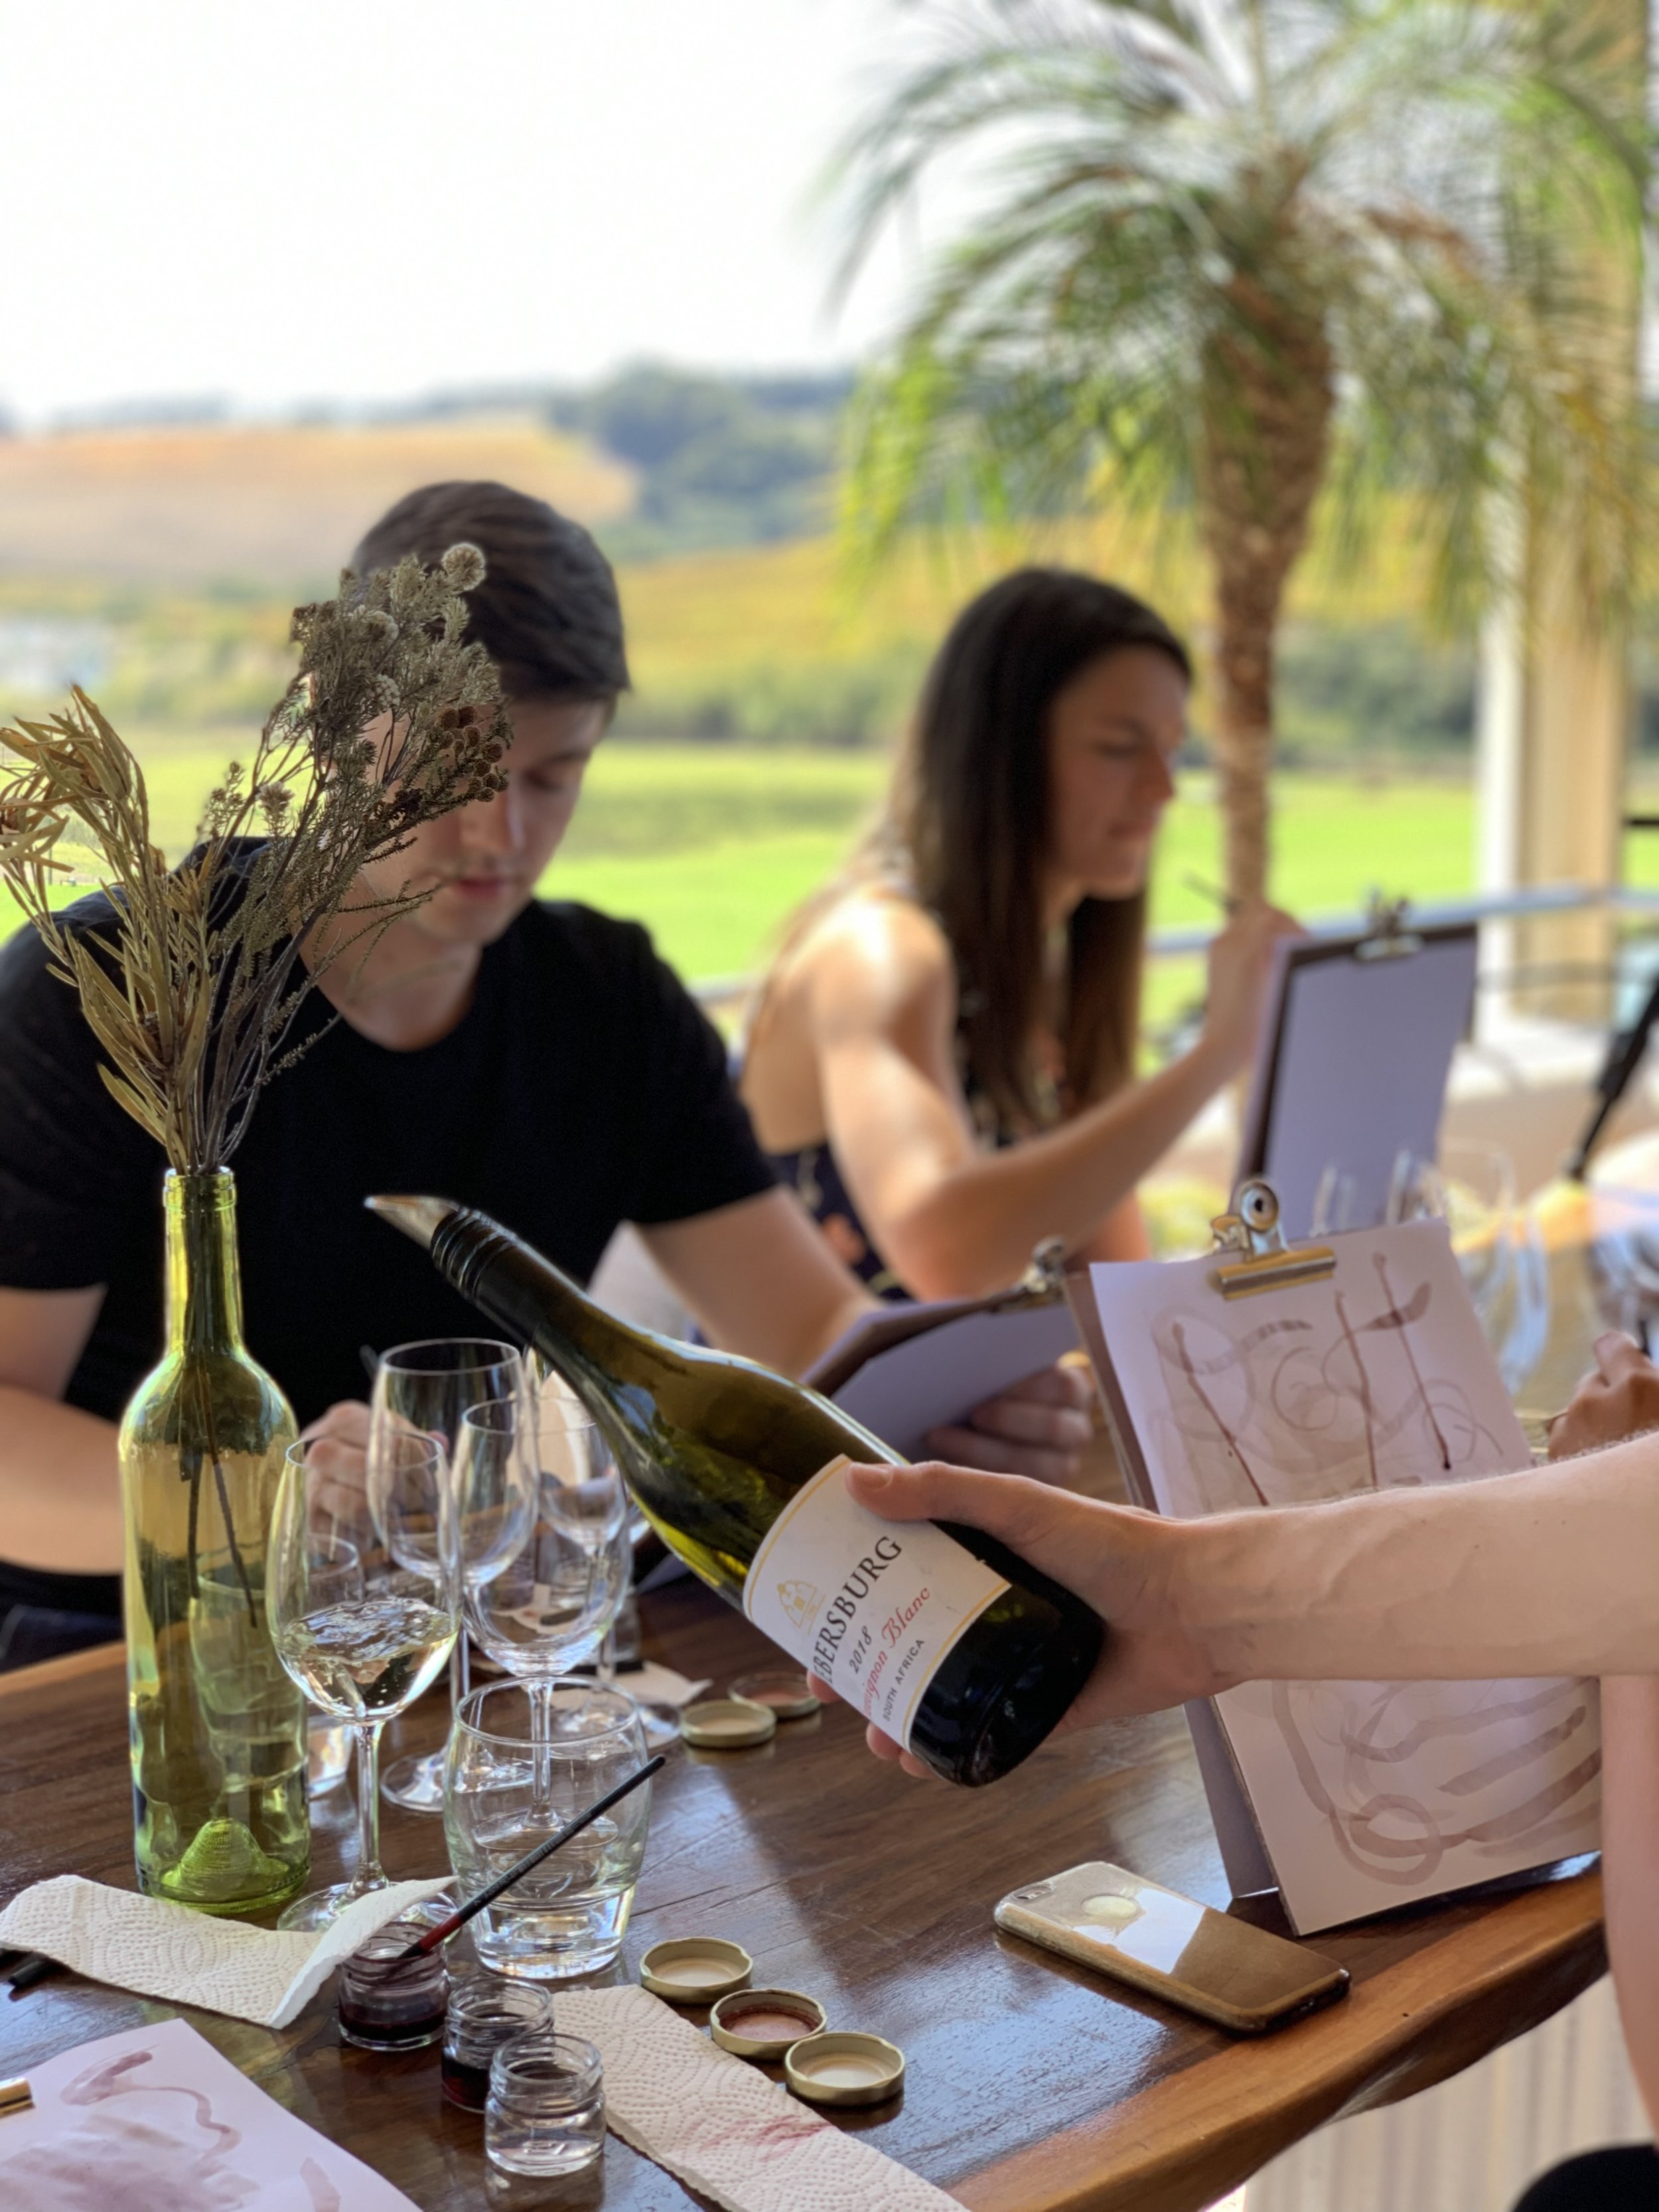 The experience includes a tasting of 3 premium Webersberg Wines